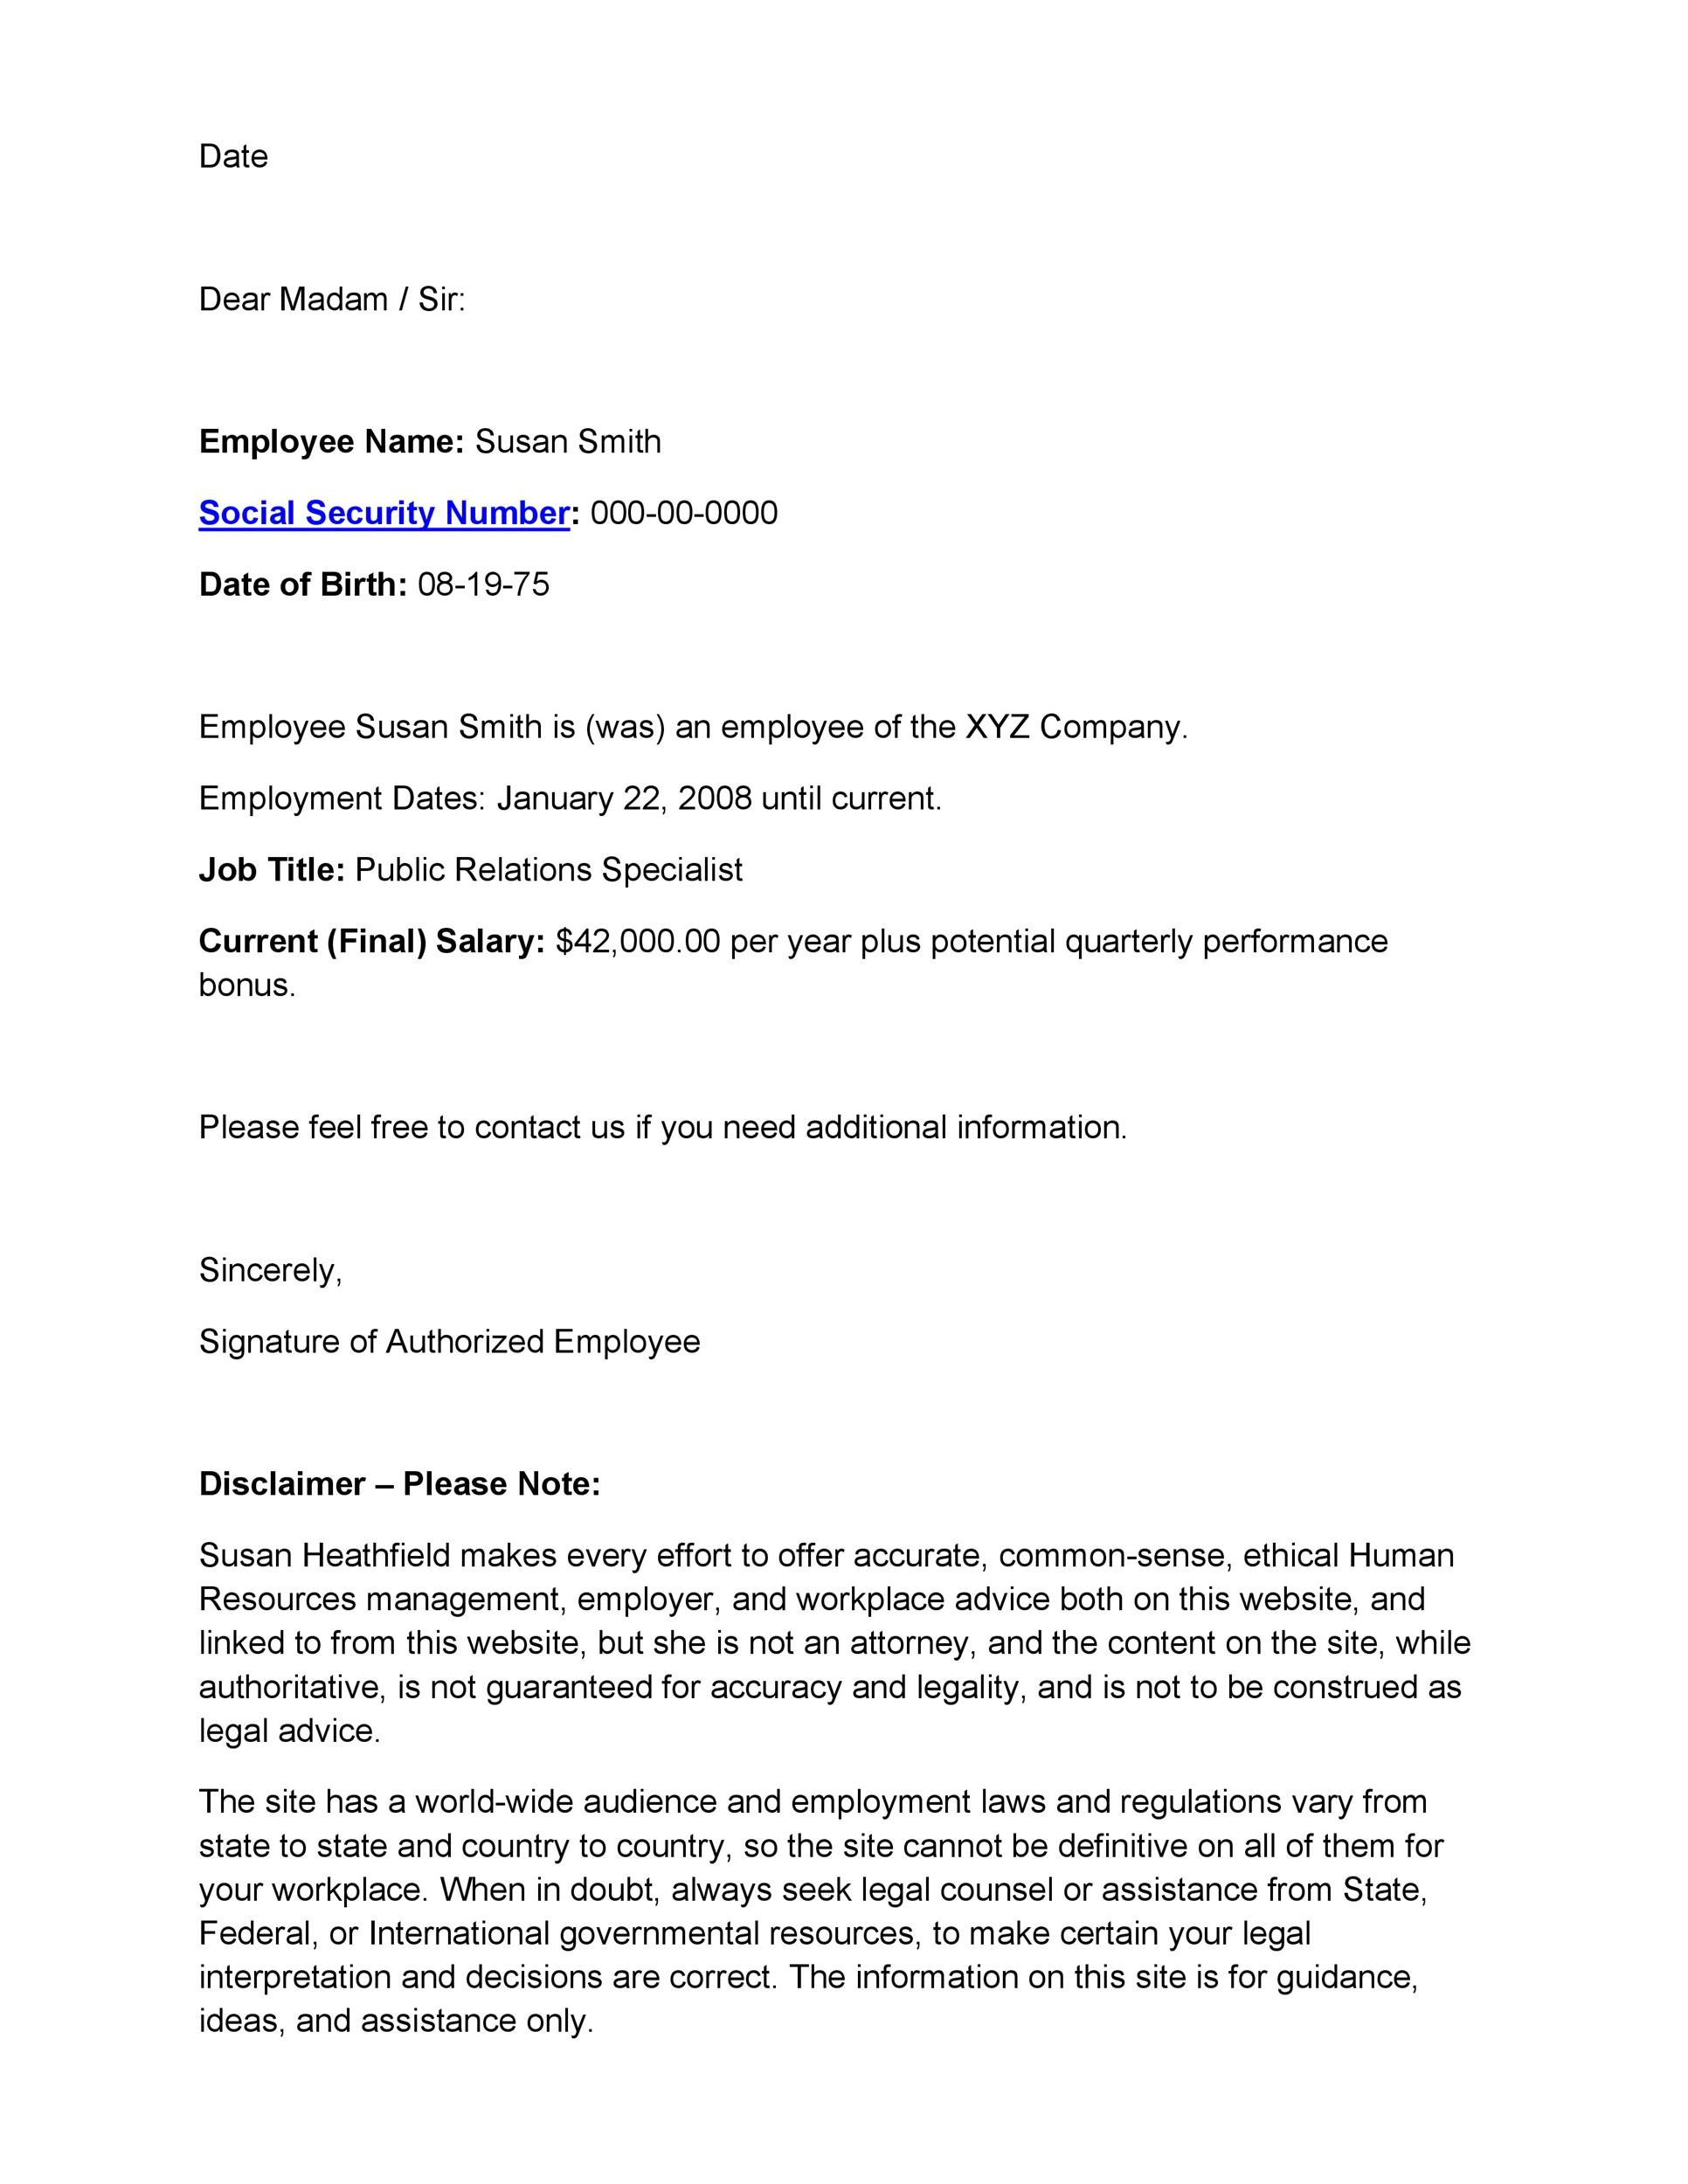 Free Proof of Employment Letter Template 12